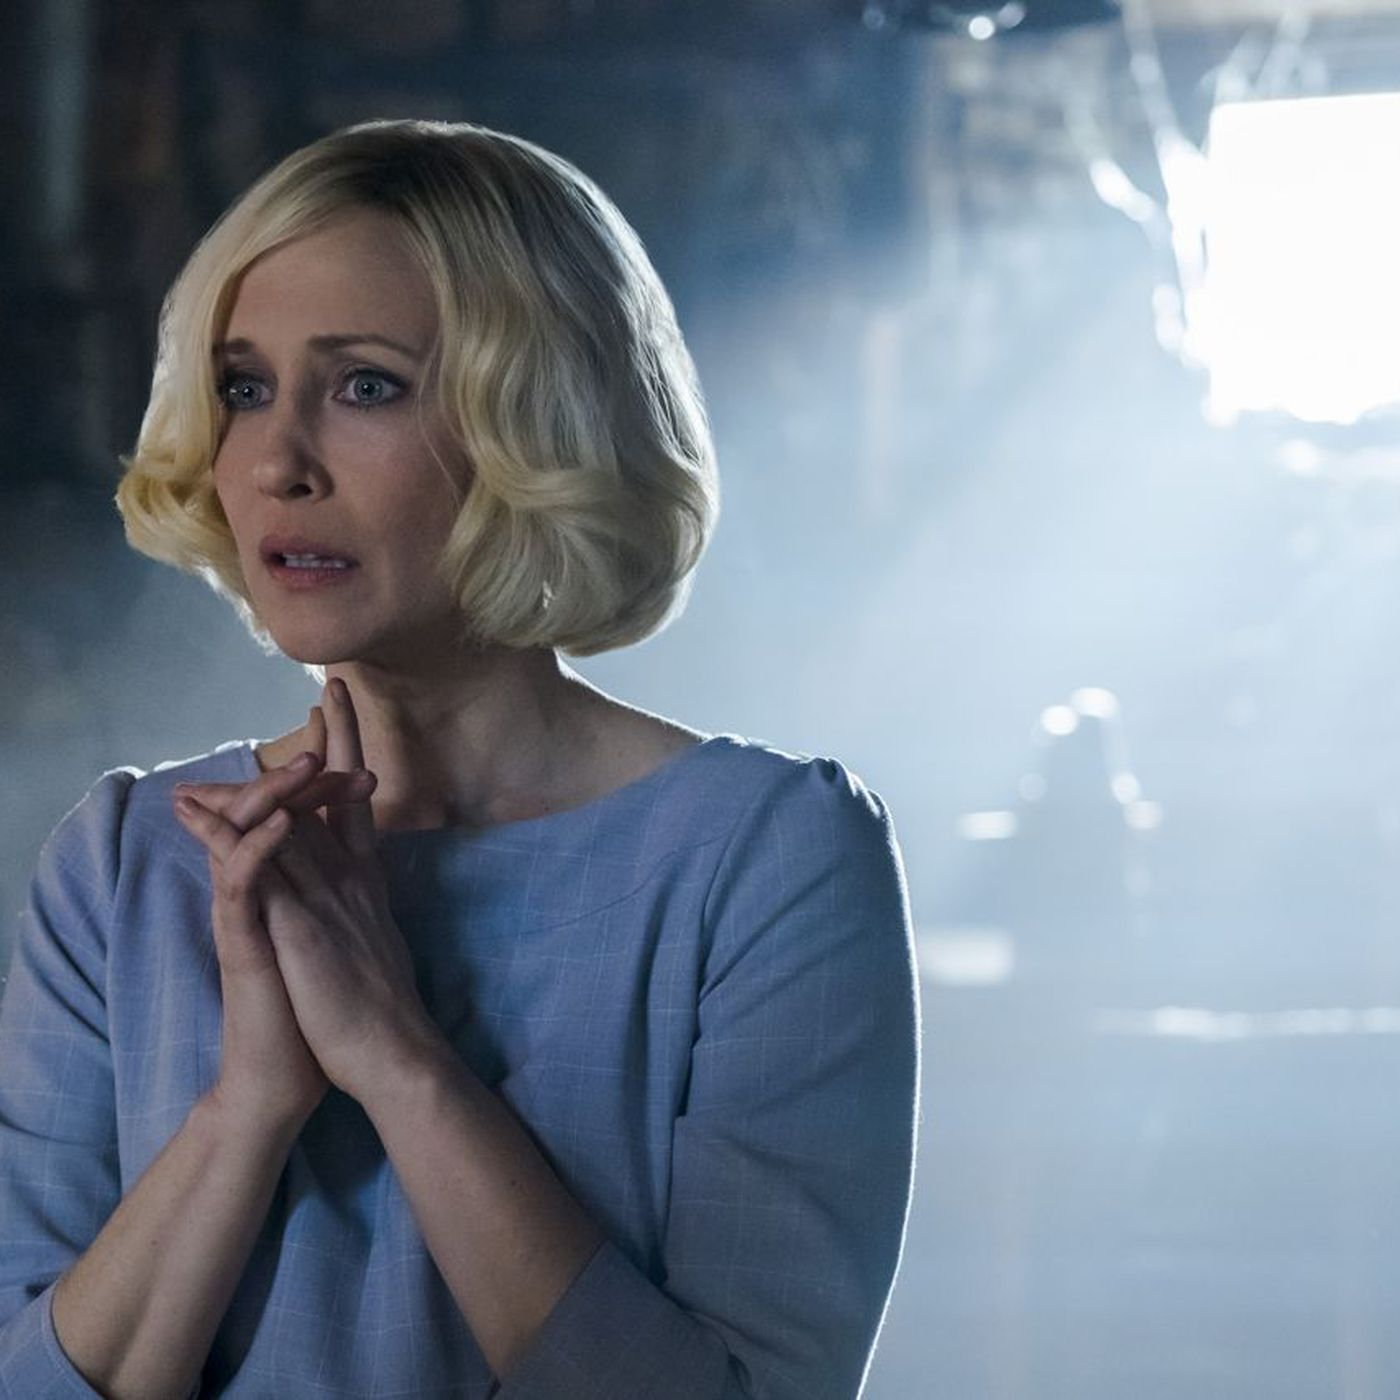 Bates Motel\'s Norma Bates is TV\'s best — and worst — mother - Vox